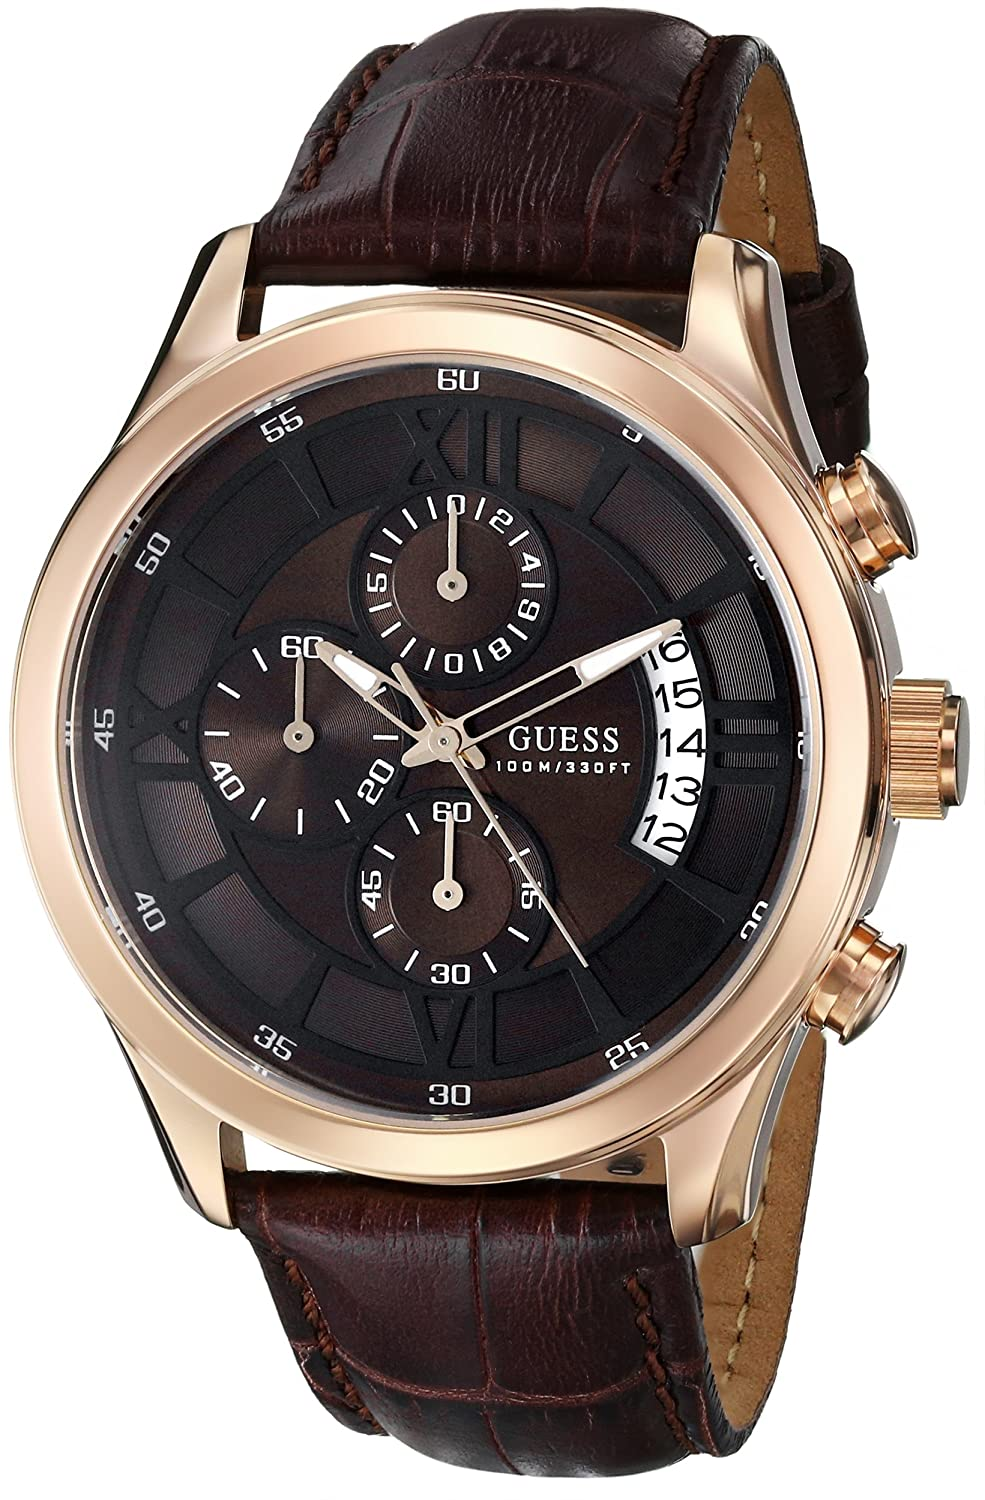 guess men s u14504g1 brown genuine leather chronograph watch guess men s u14504g1 brown genuine leather chronograph watch brown dial guess amazon co uk watches